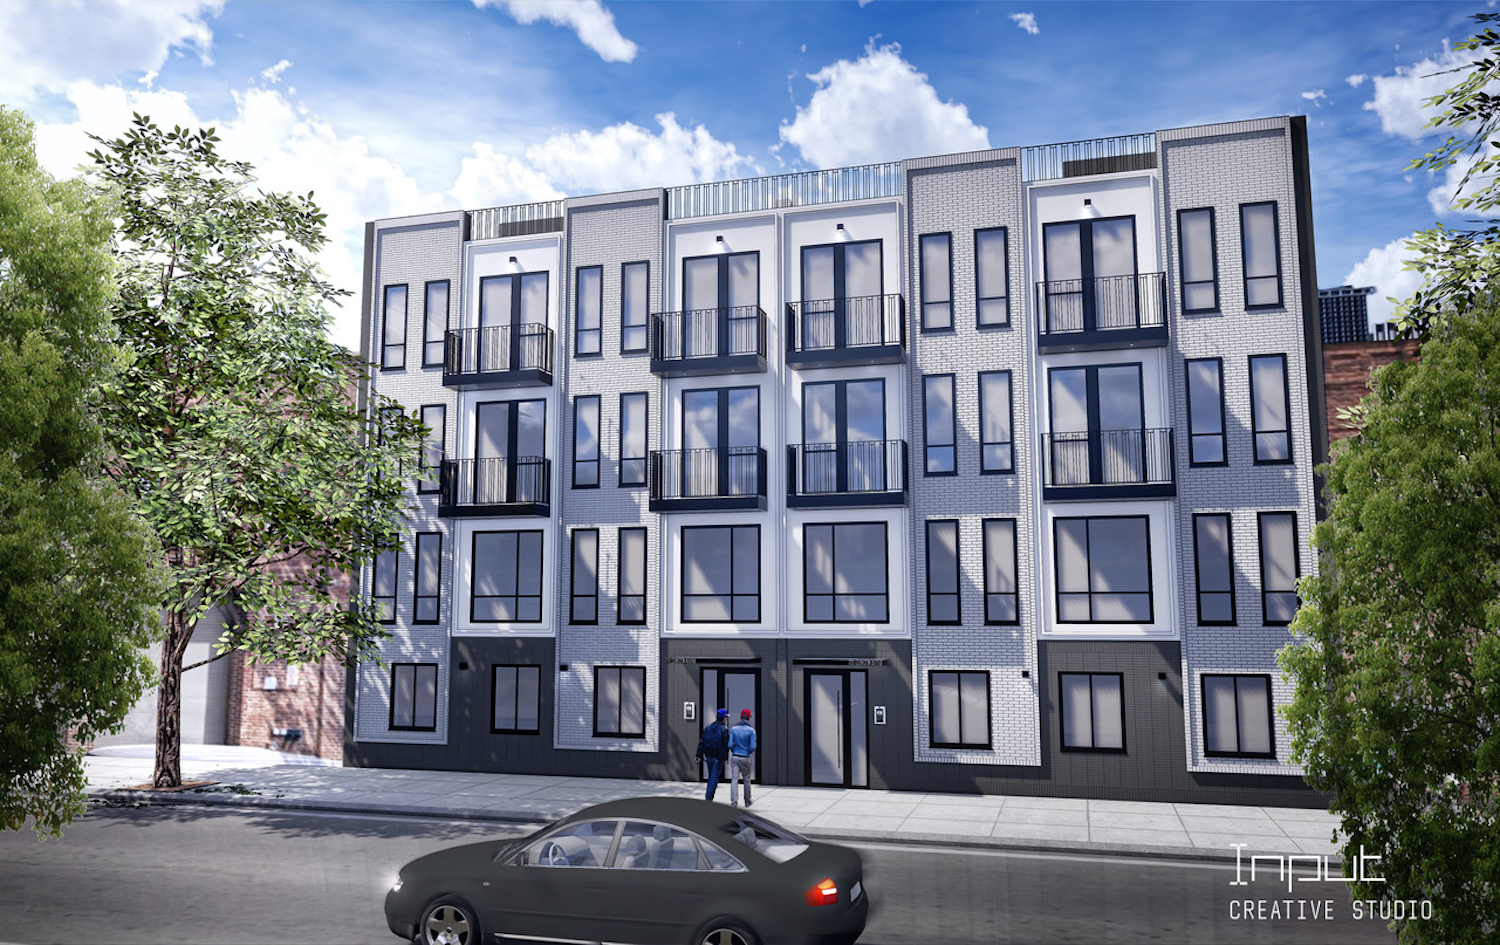 770-774 Lexington Avenue in Bed-Stuy, Brooklyn. Credit: Input Creative Studio via NYC Housing Connect